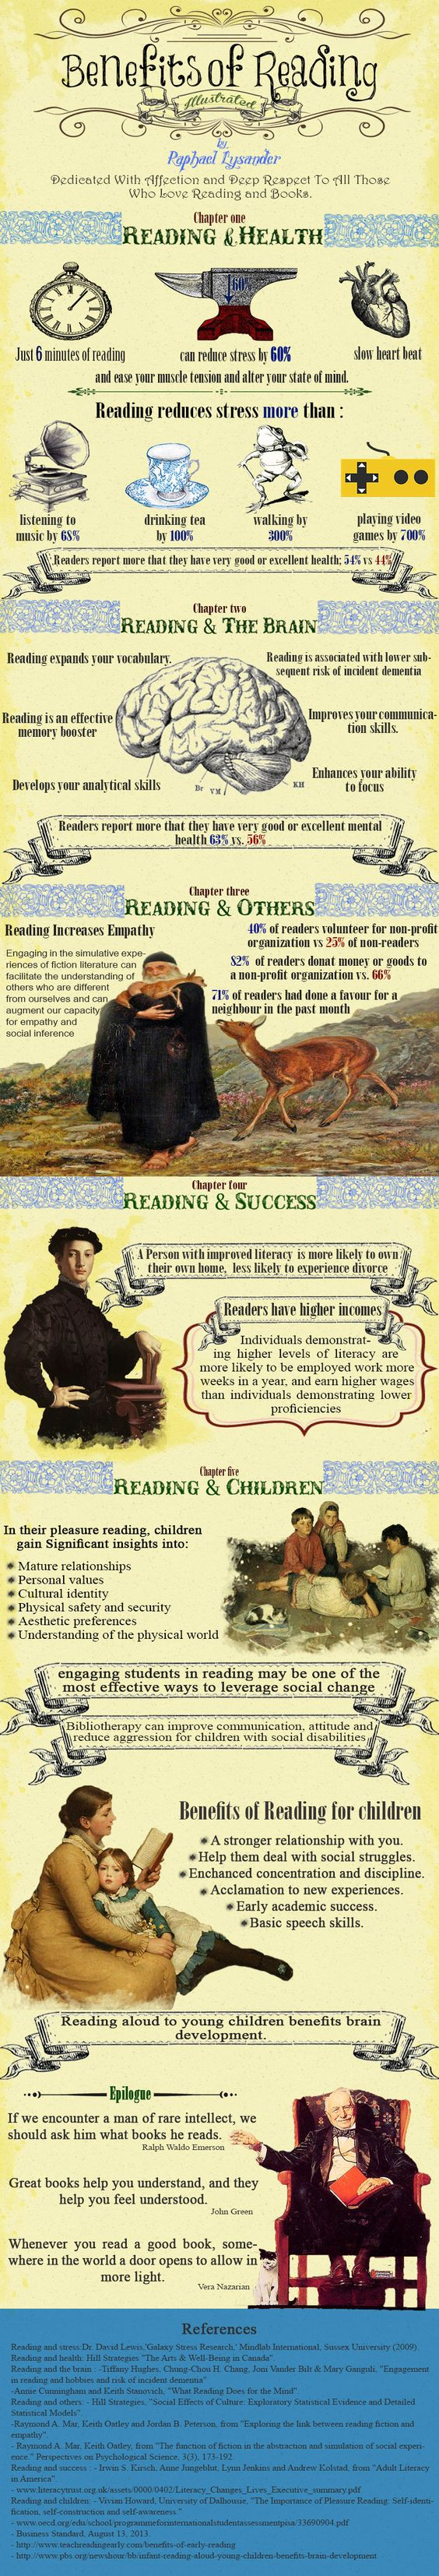 Benefits of Reading by Raphael Lysander